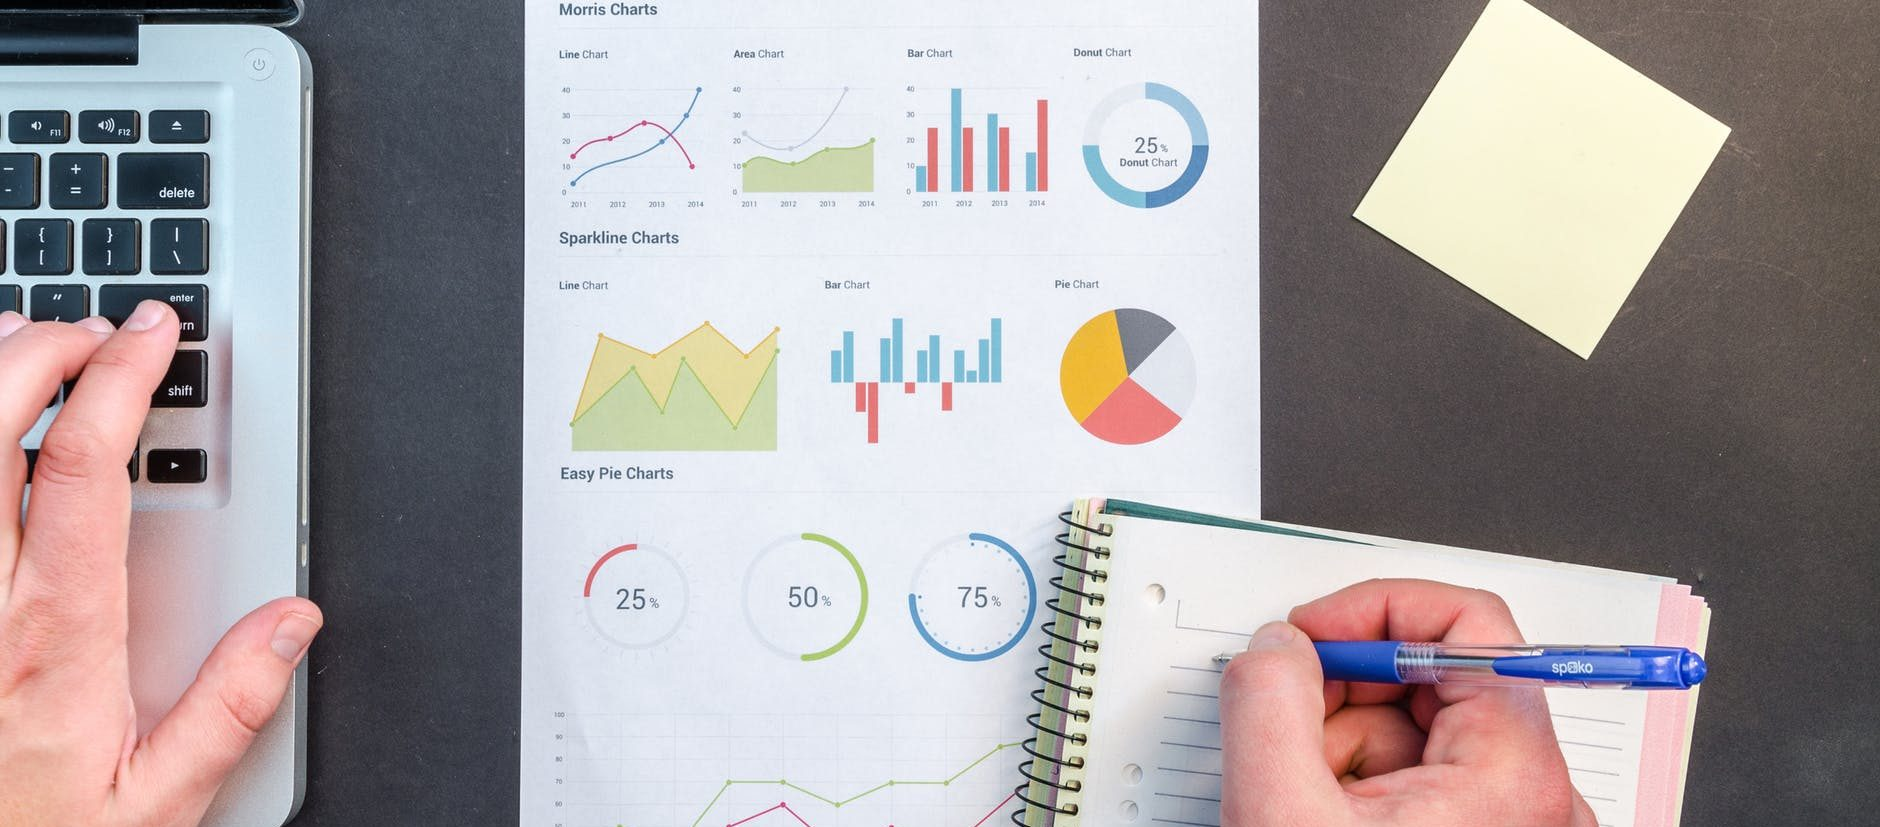 data visualizations as a tool